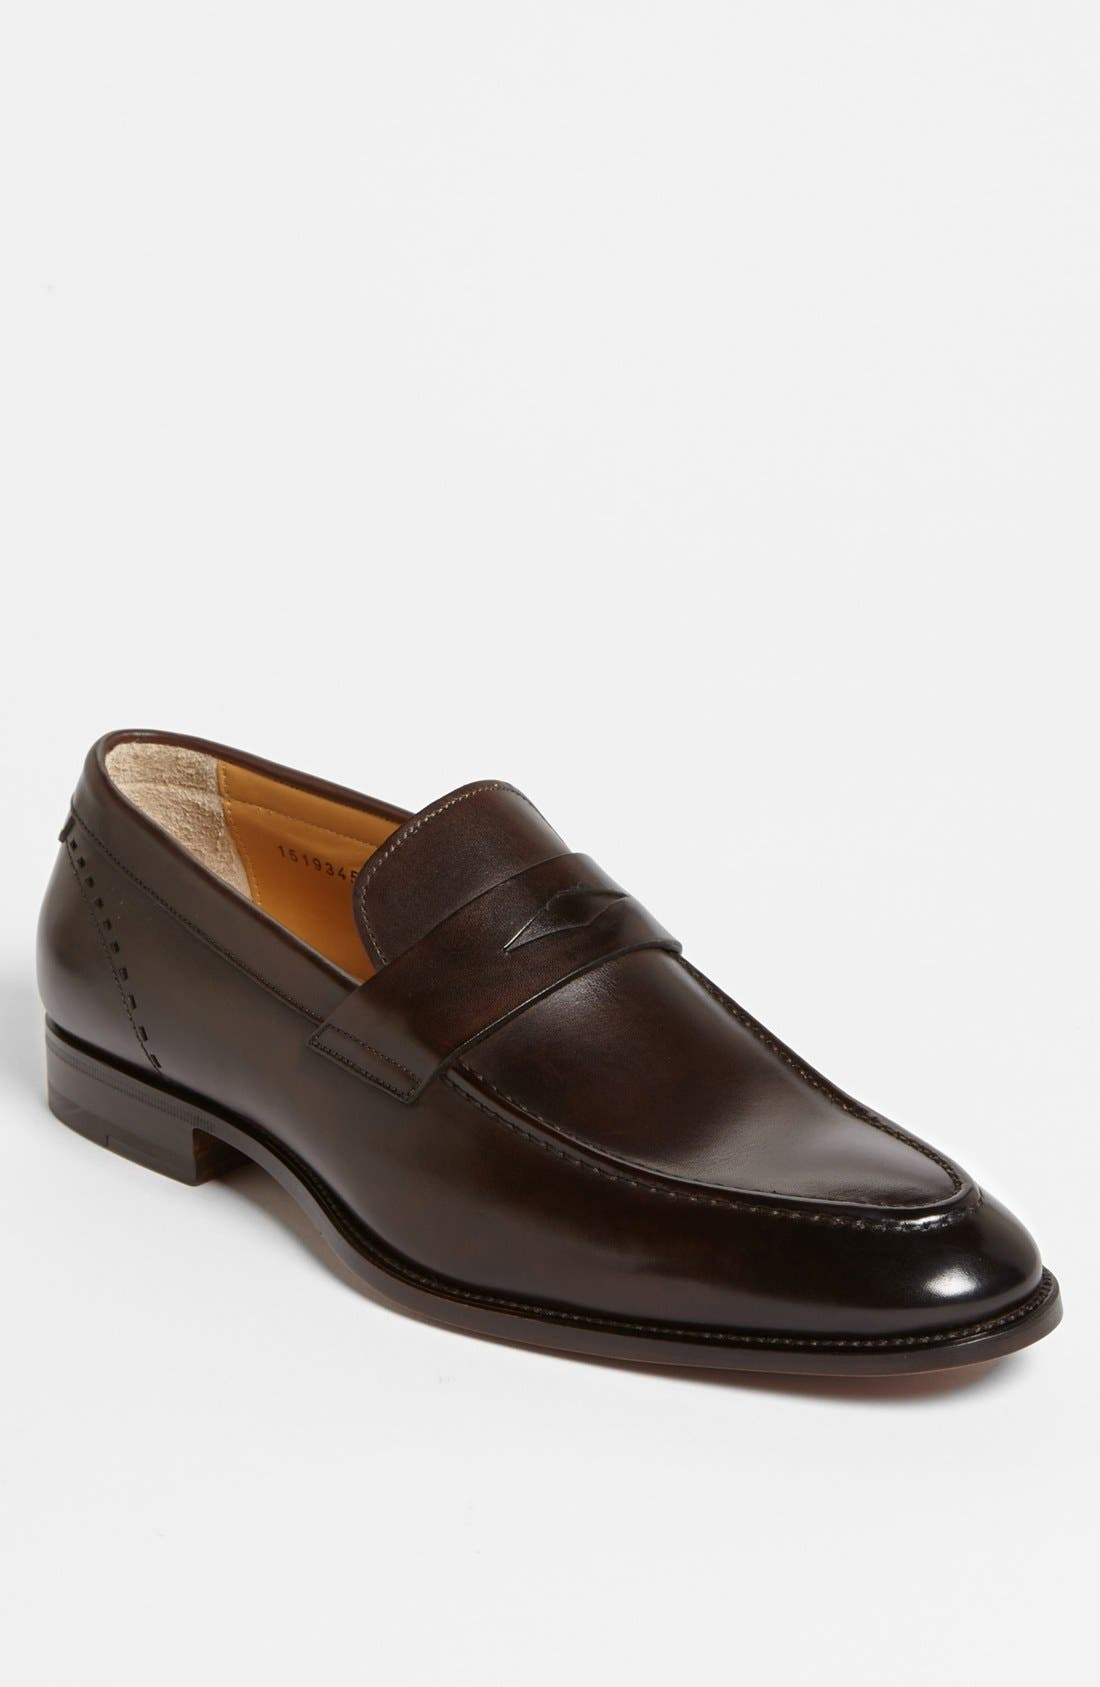 Alternate Image 1 Selected - Santoni 'Patrick' Penny Loafer